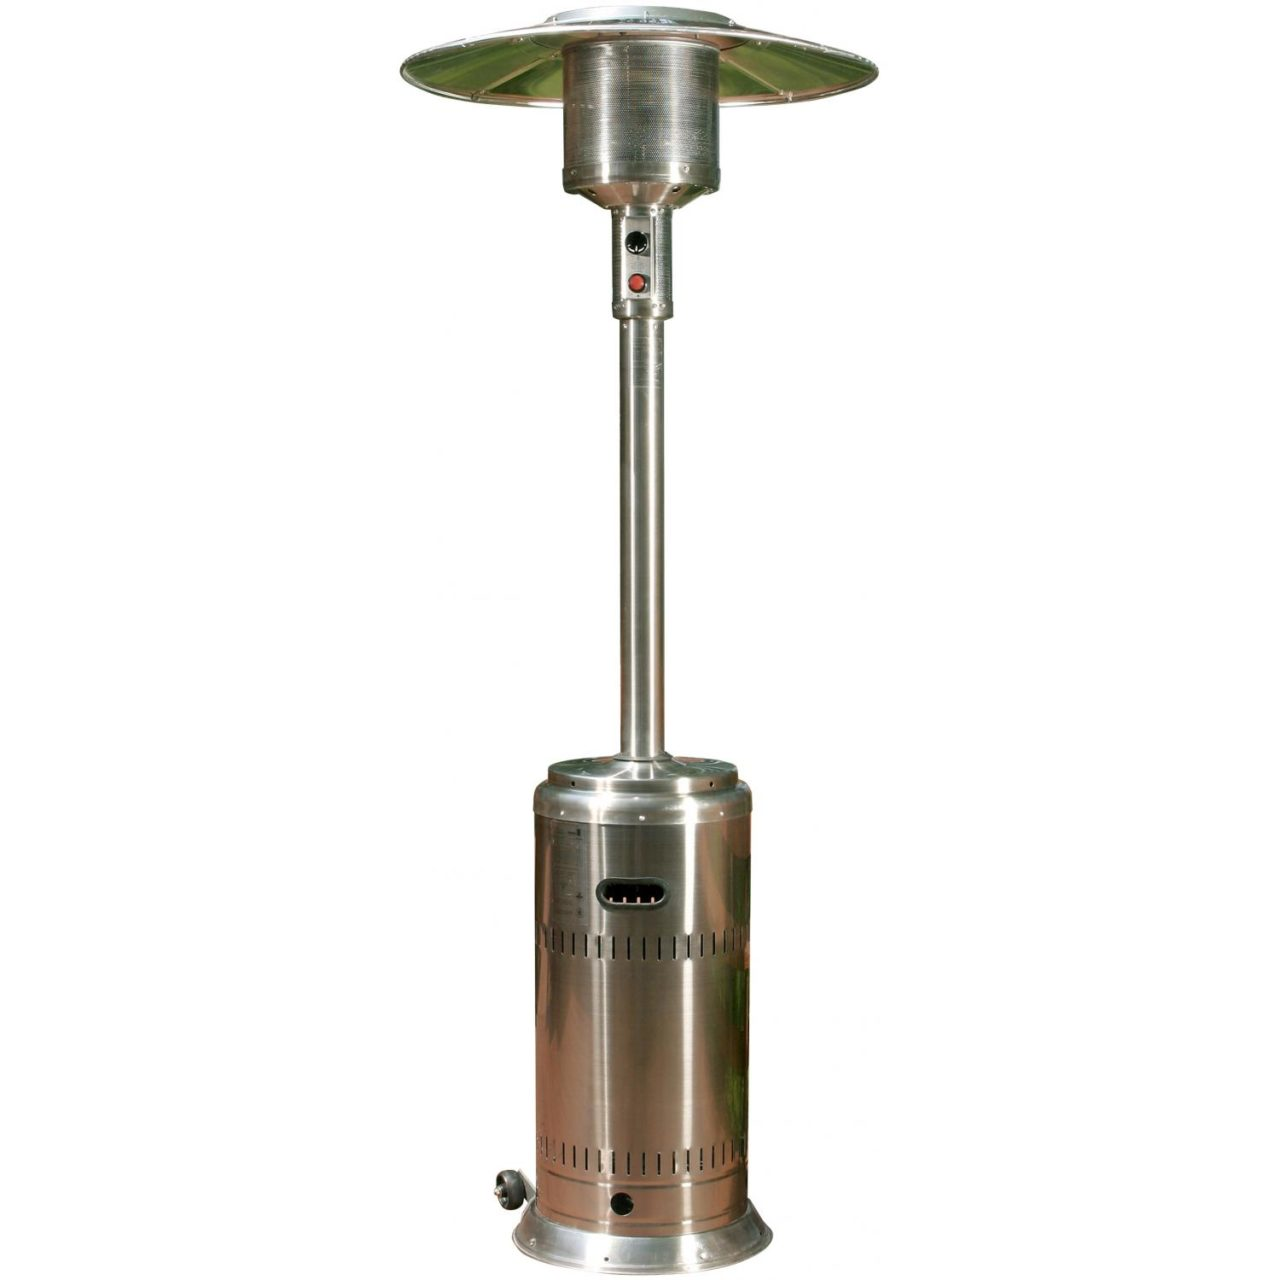 Stainless Outdoor Patio Heater Rental  Party Time Rentals